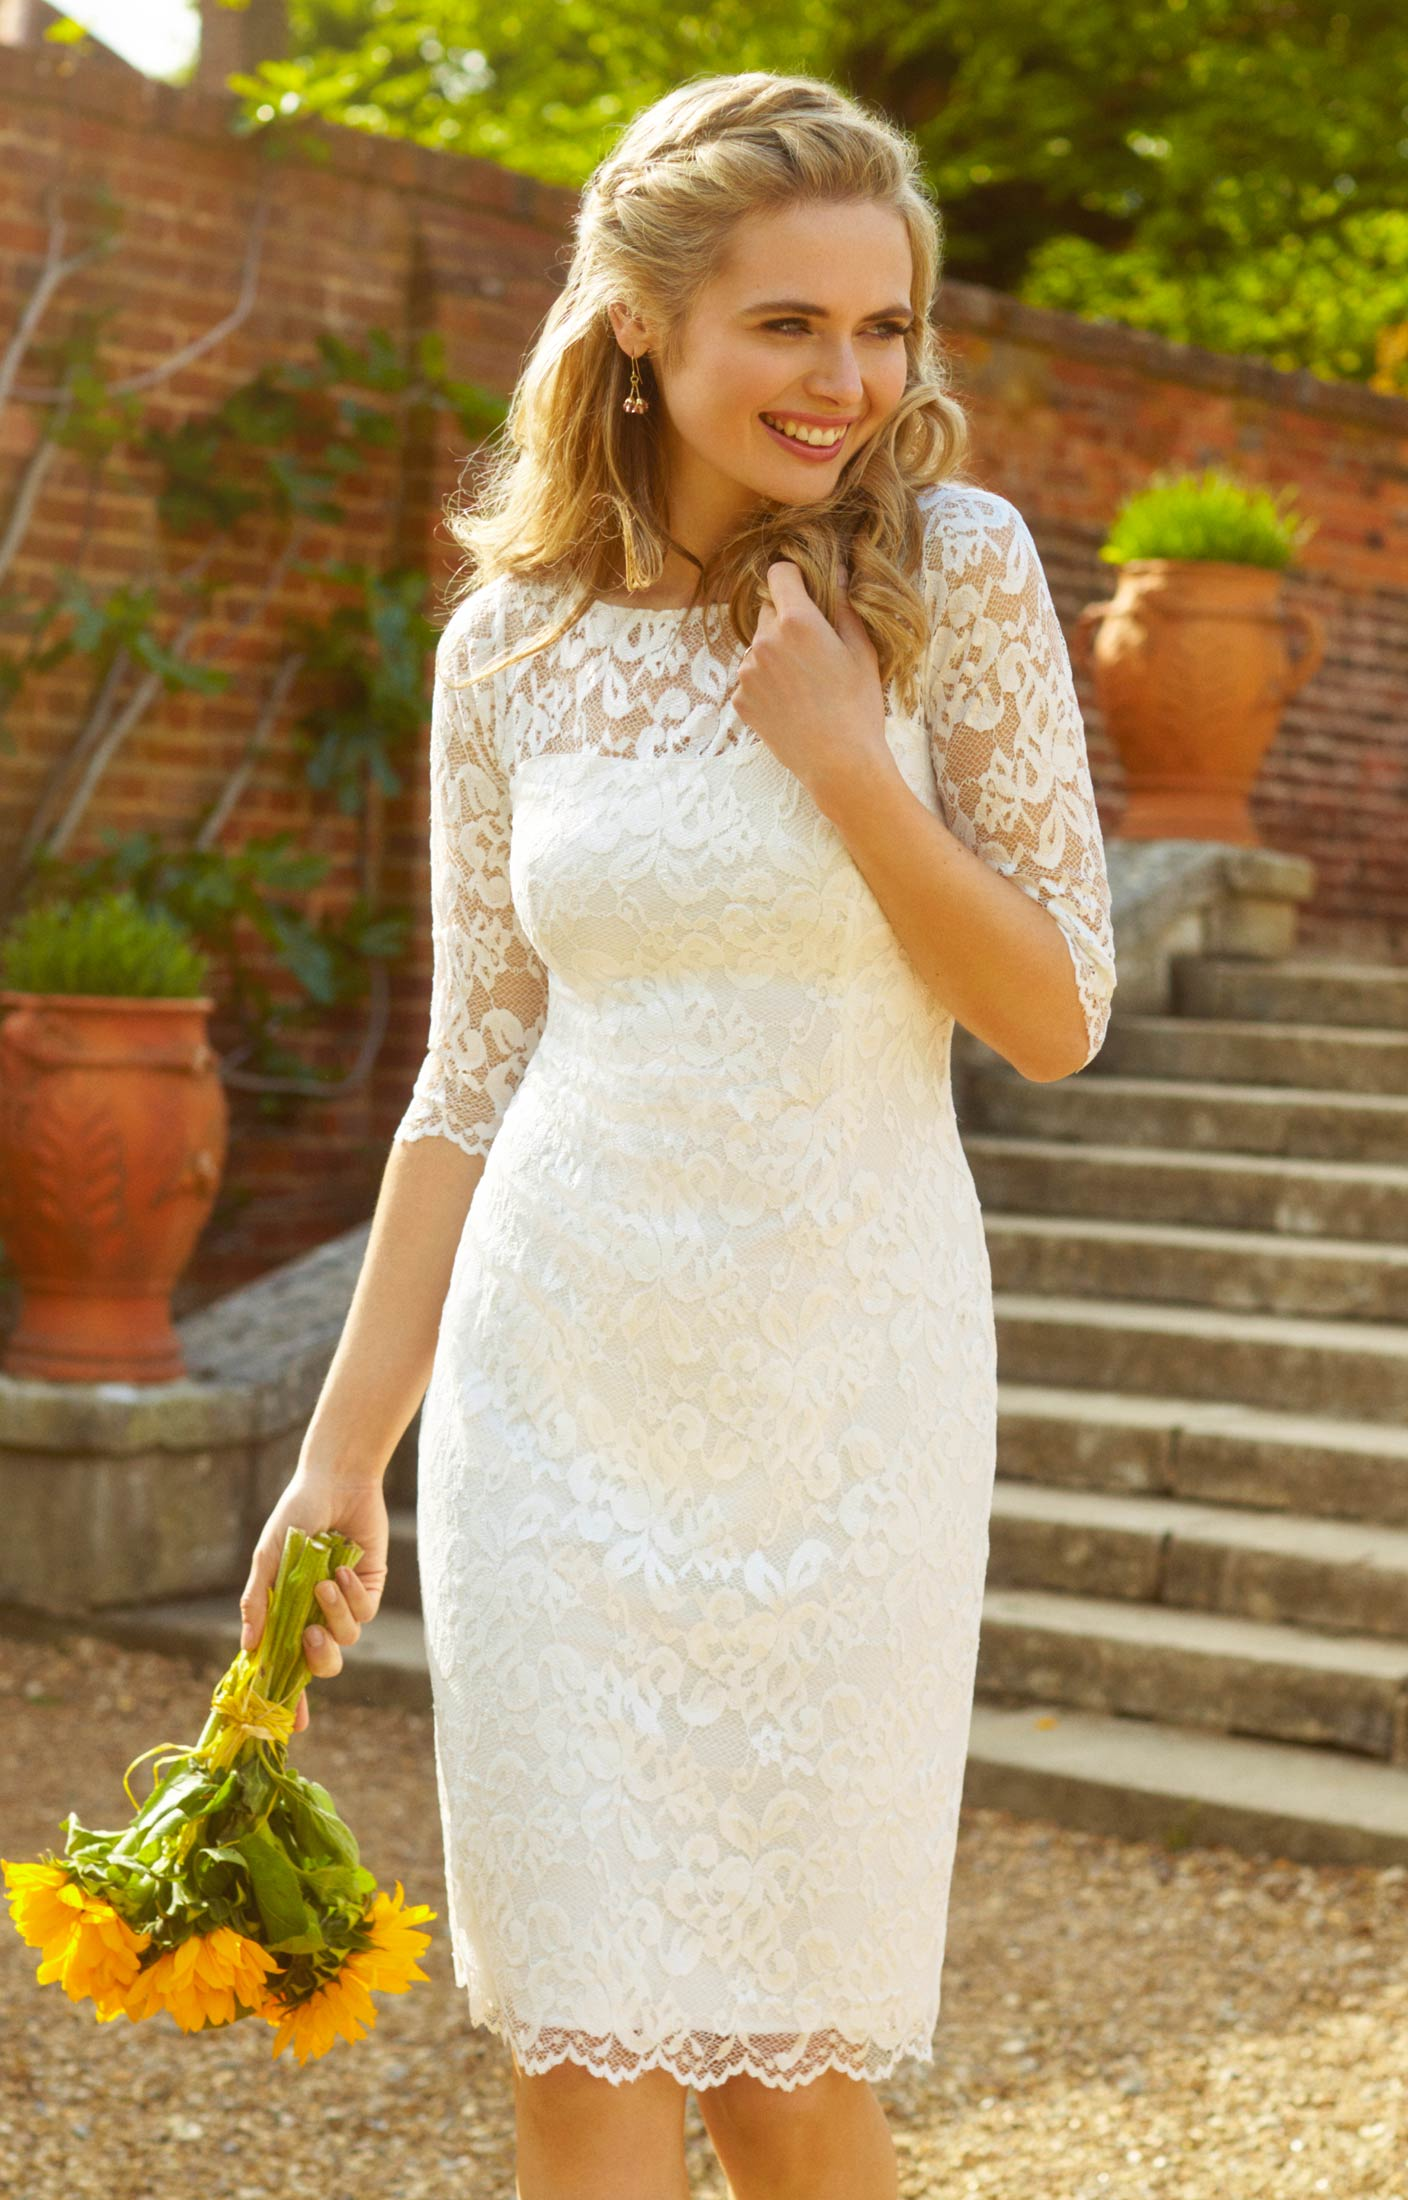 Wedding Dresses- Wedding Gowns and Bridal Wear